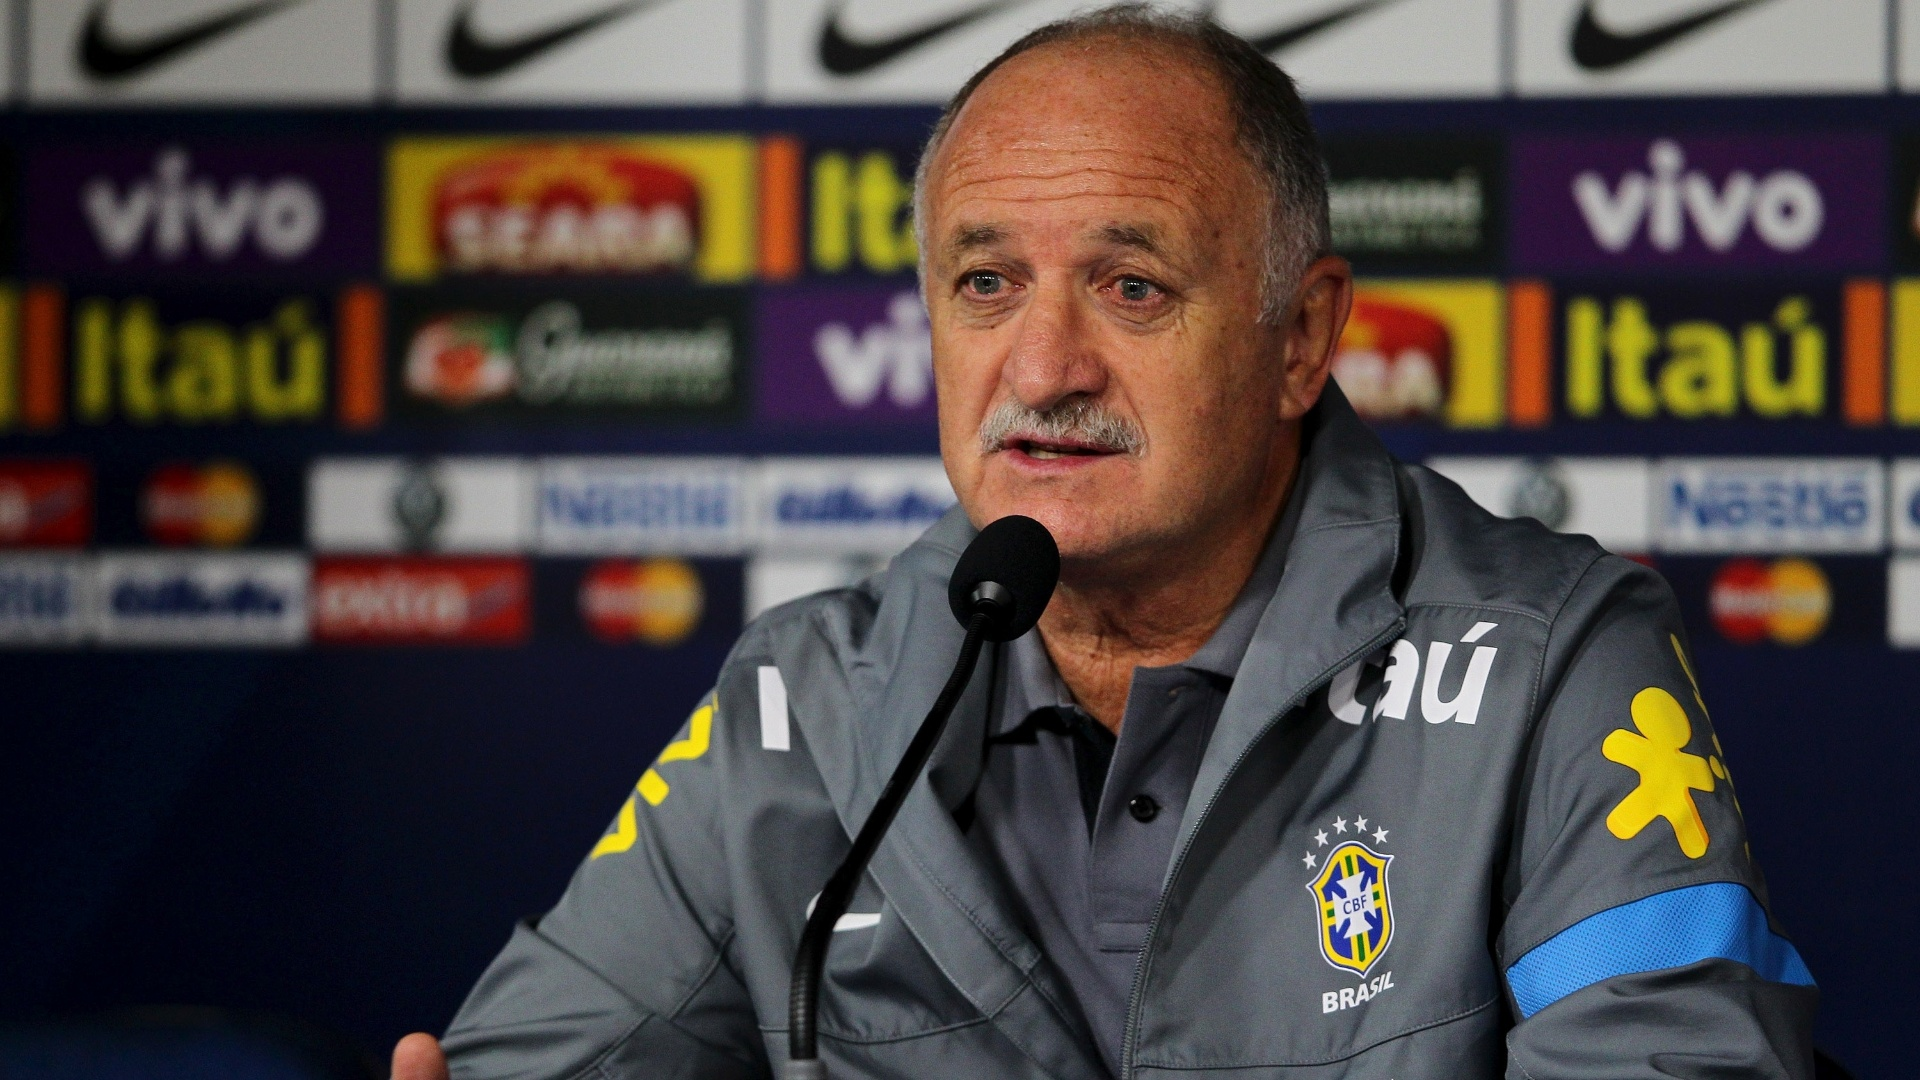 23.abr.2013 - Tcnico Luiz Felipe Scolari concede entrevista coletiva aps o treinamento da seleo brasileira